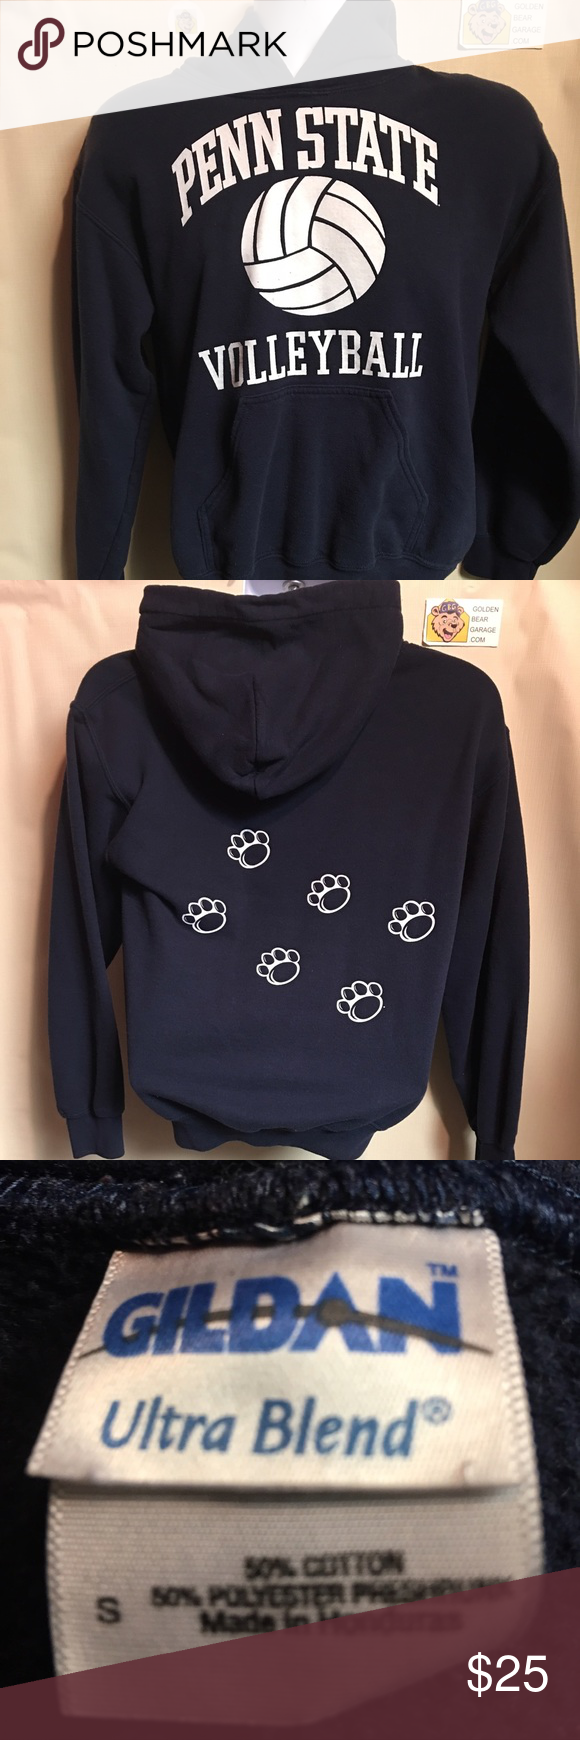 Vintage Penn State Women S Small Volleyball Hoodie Volleyball Hoodie Hoodies Women